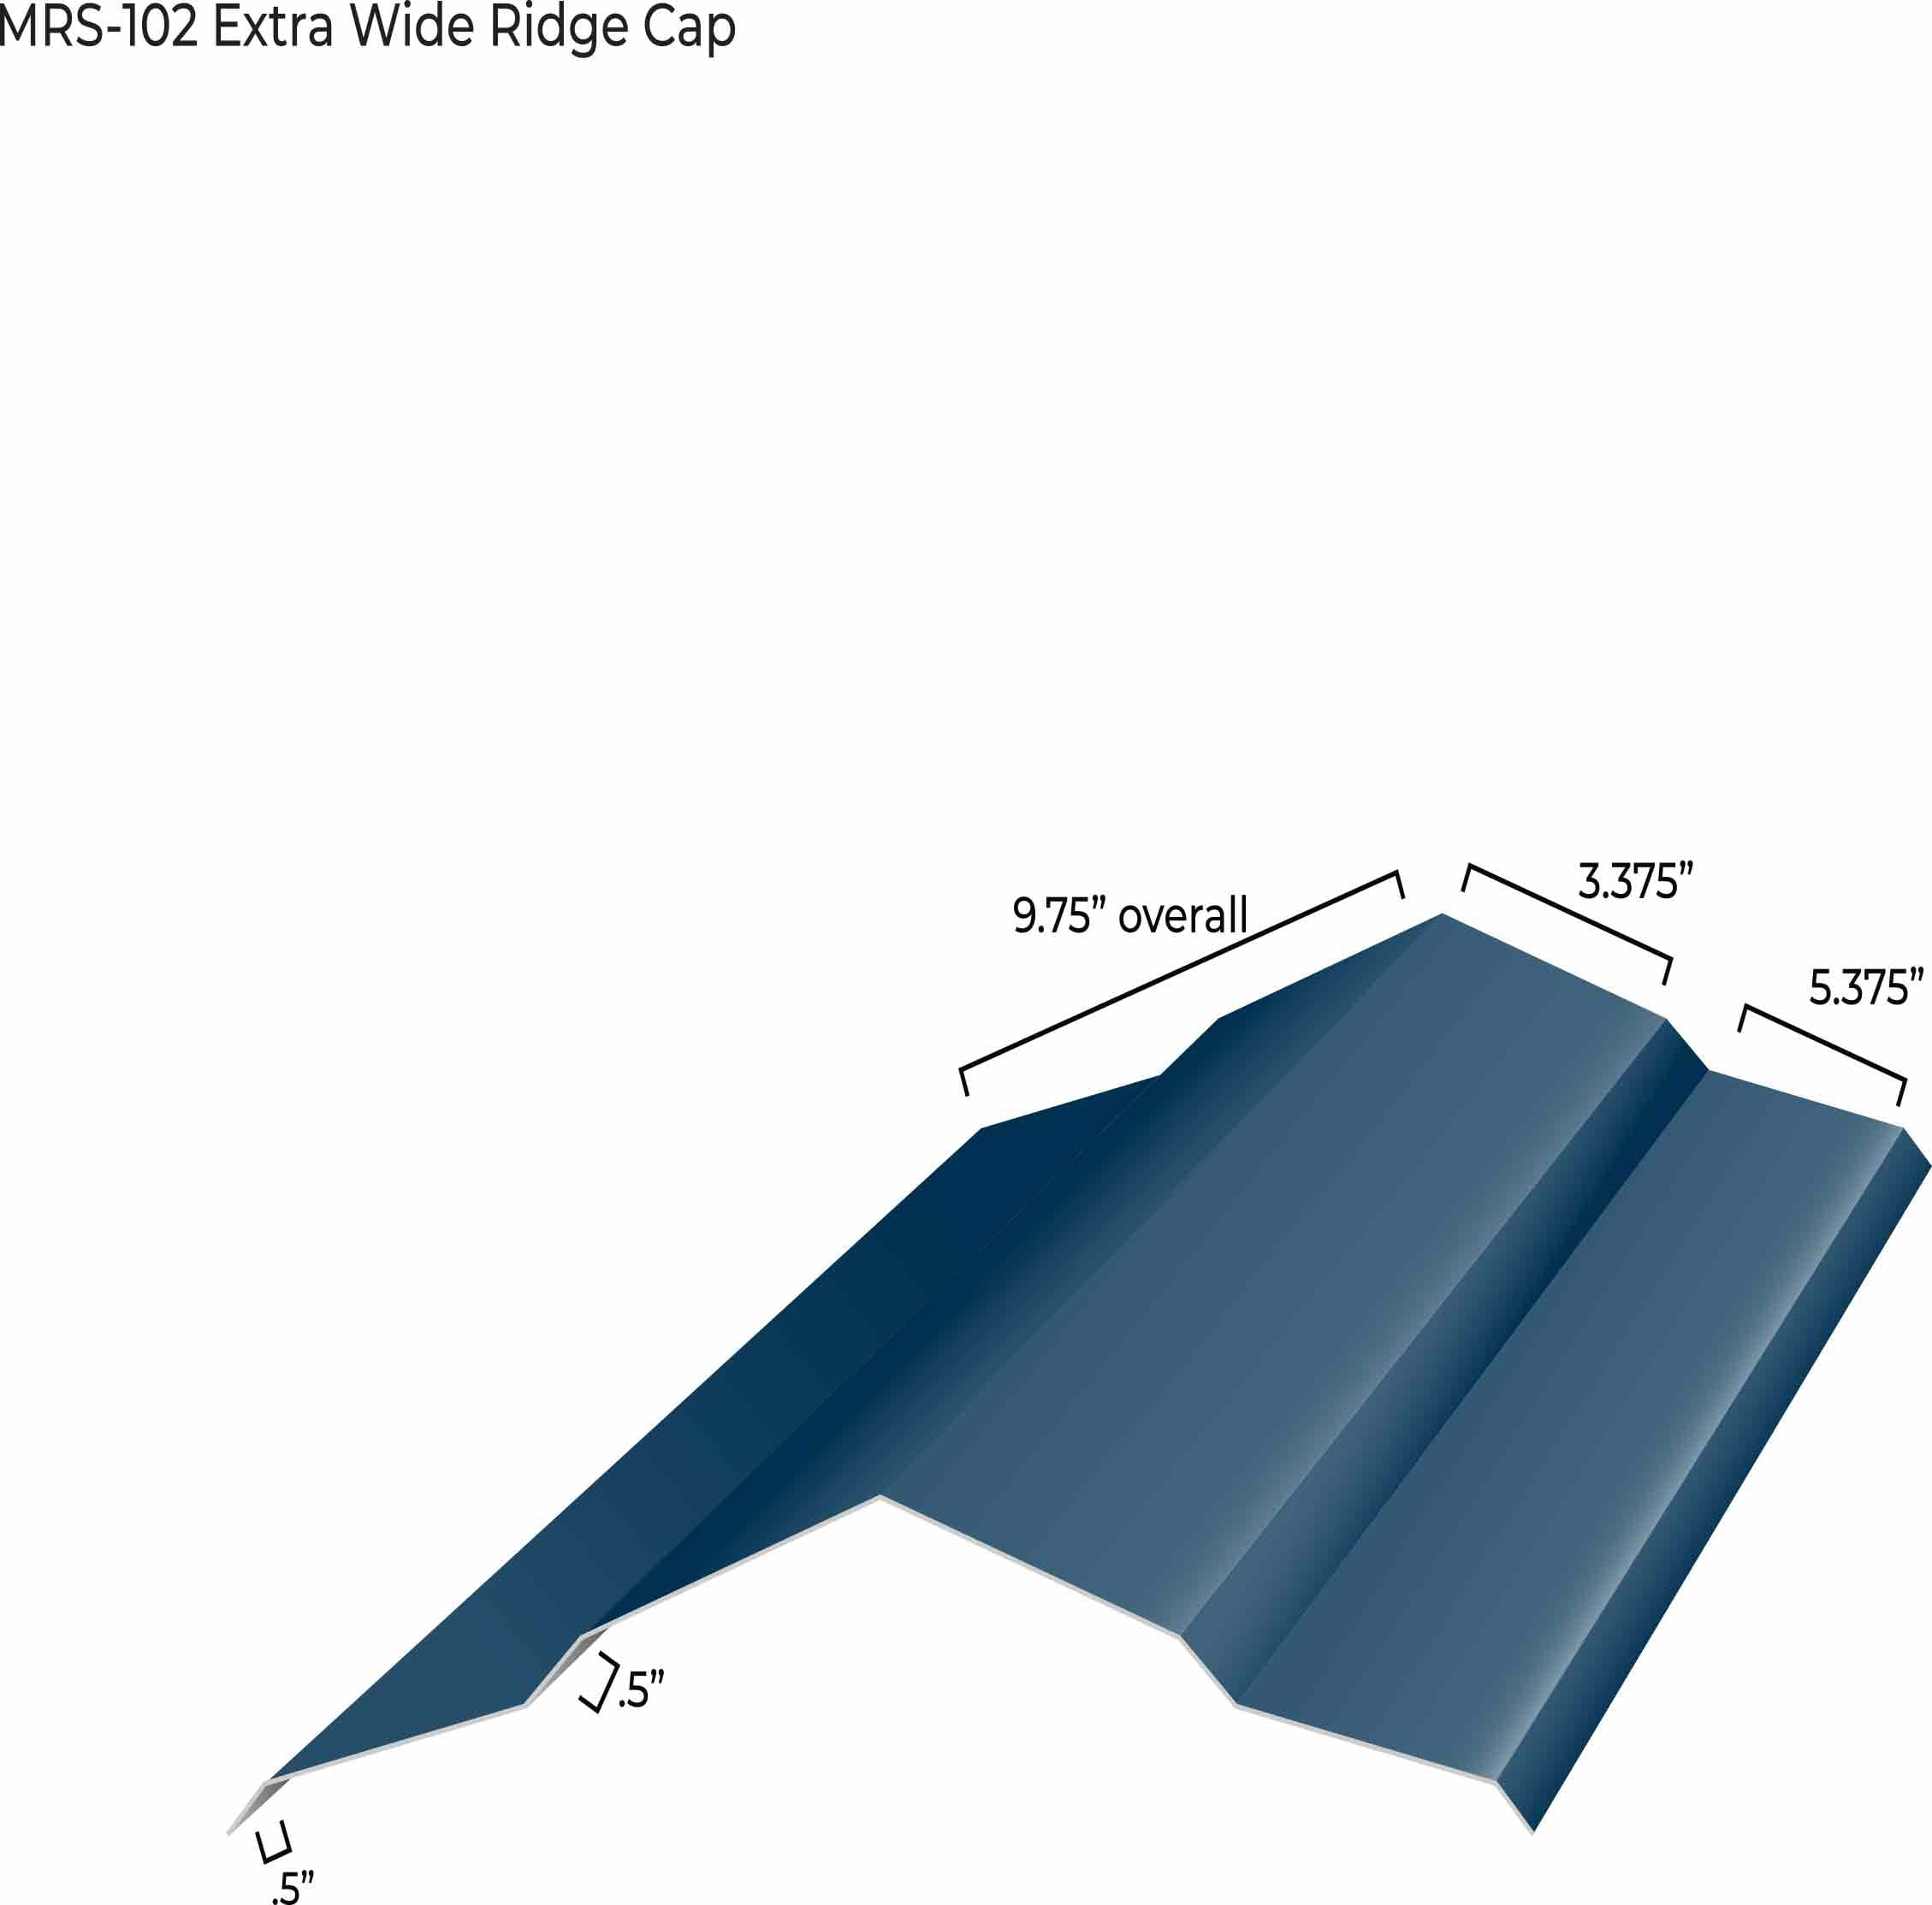 MRS-102 Extra Wide Ridge Cap